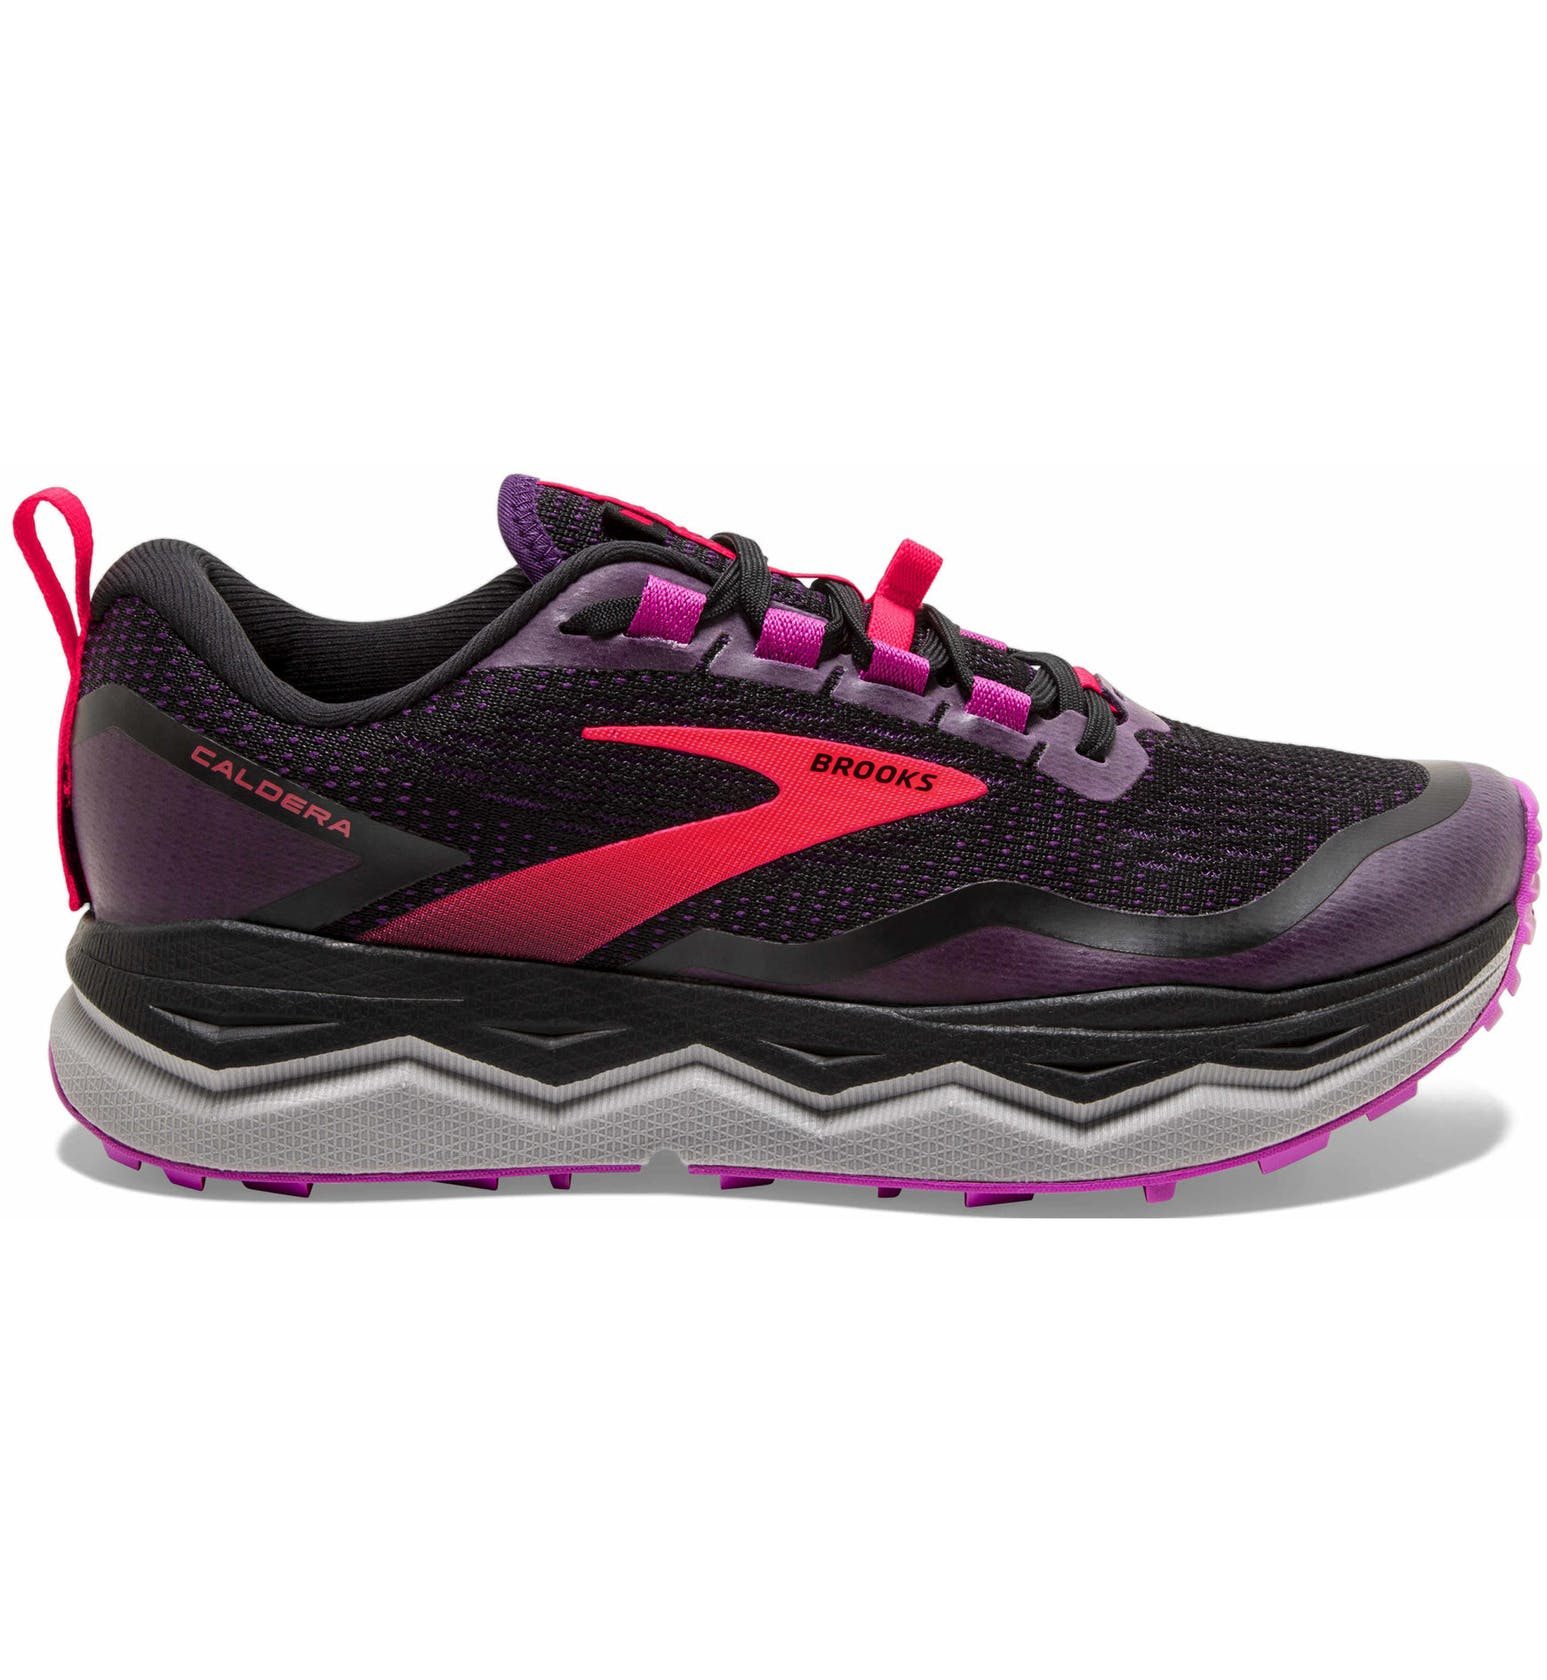 Brooks Caldera 5 - Trailrunningschuh - Damen